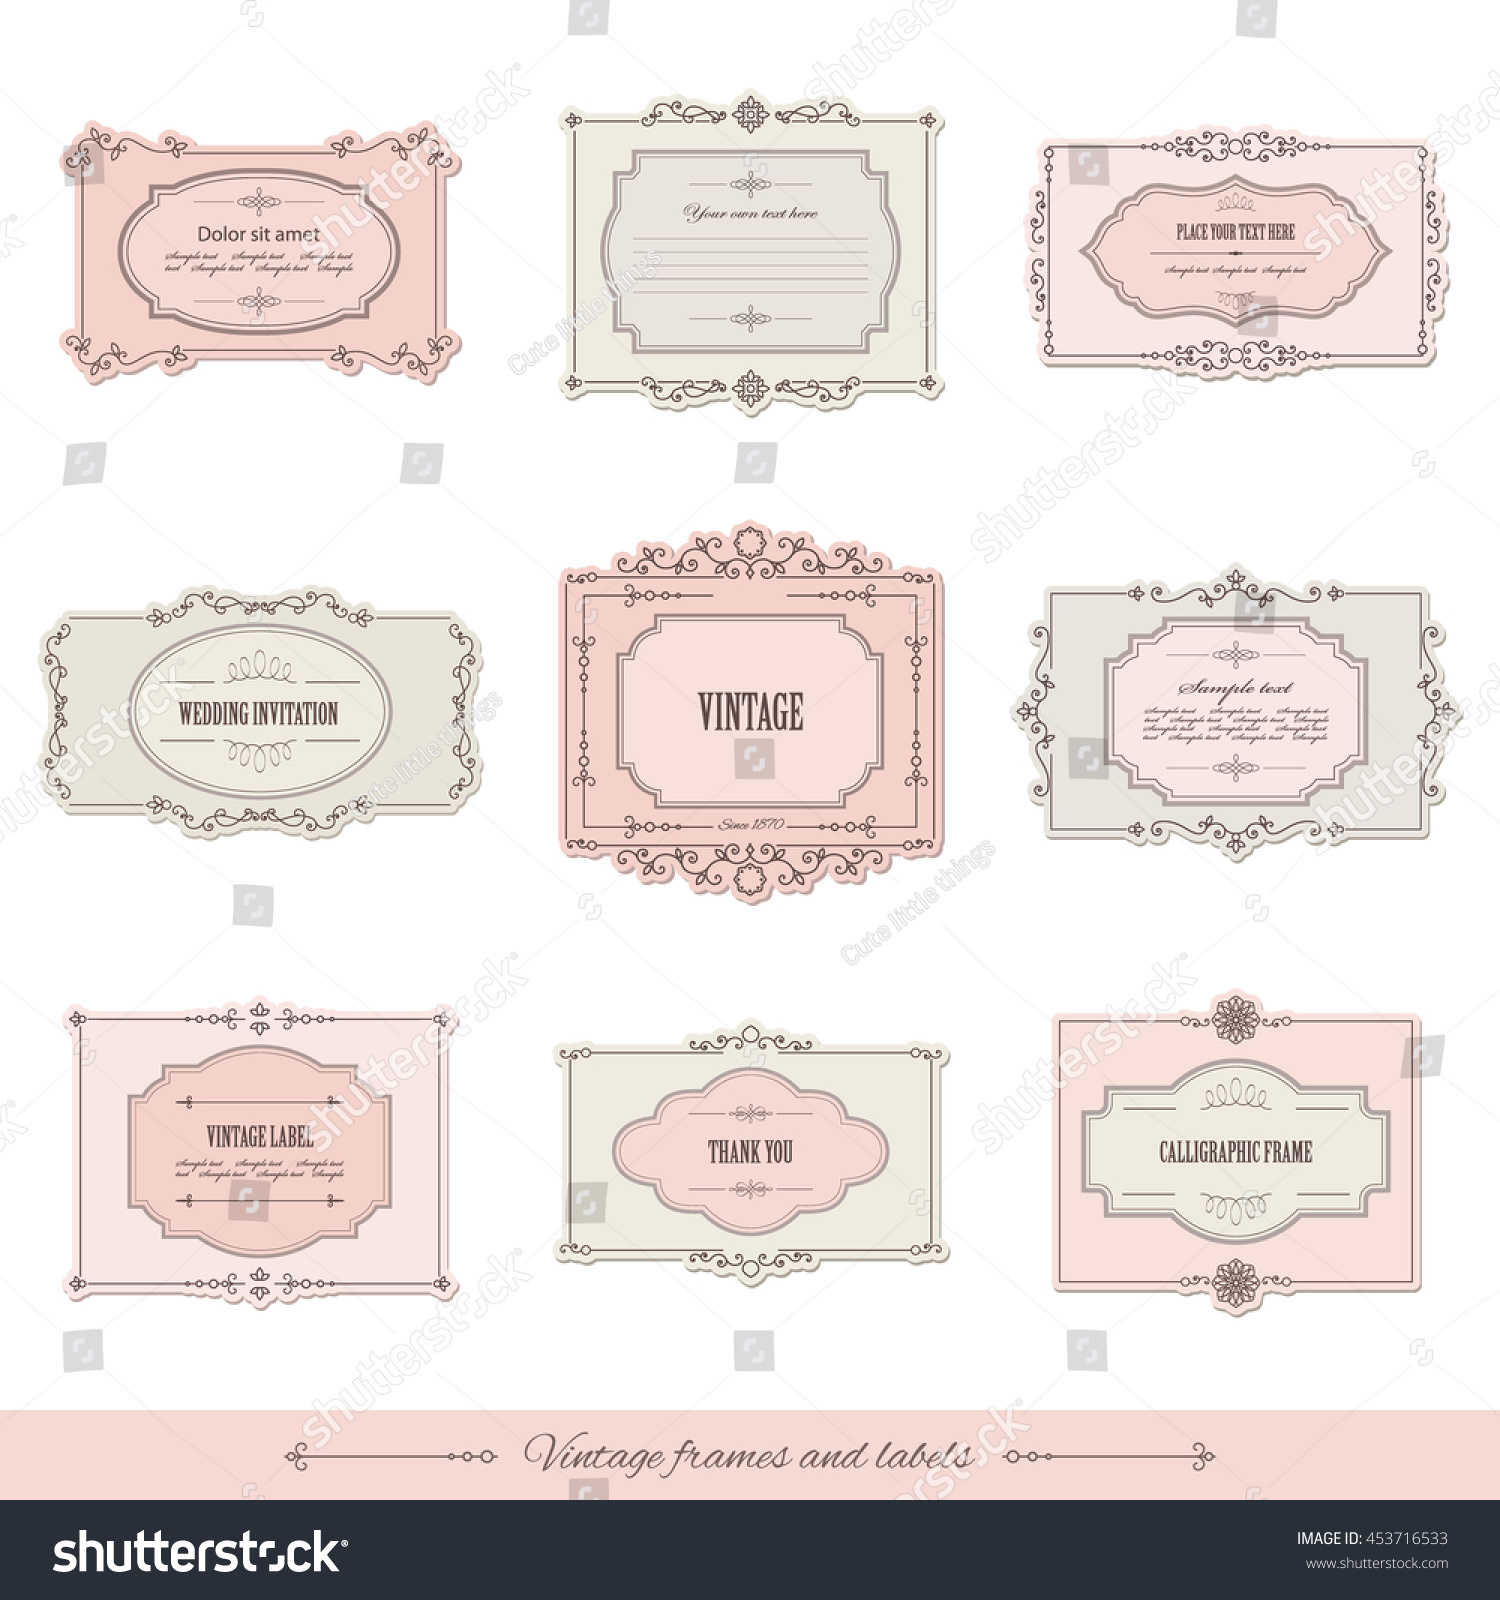 How to scrapbook a wedding invitation - Vintage Calligraphic Frames And Labels Set For Invitation Card Certificate Scrapbook Wedding